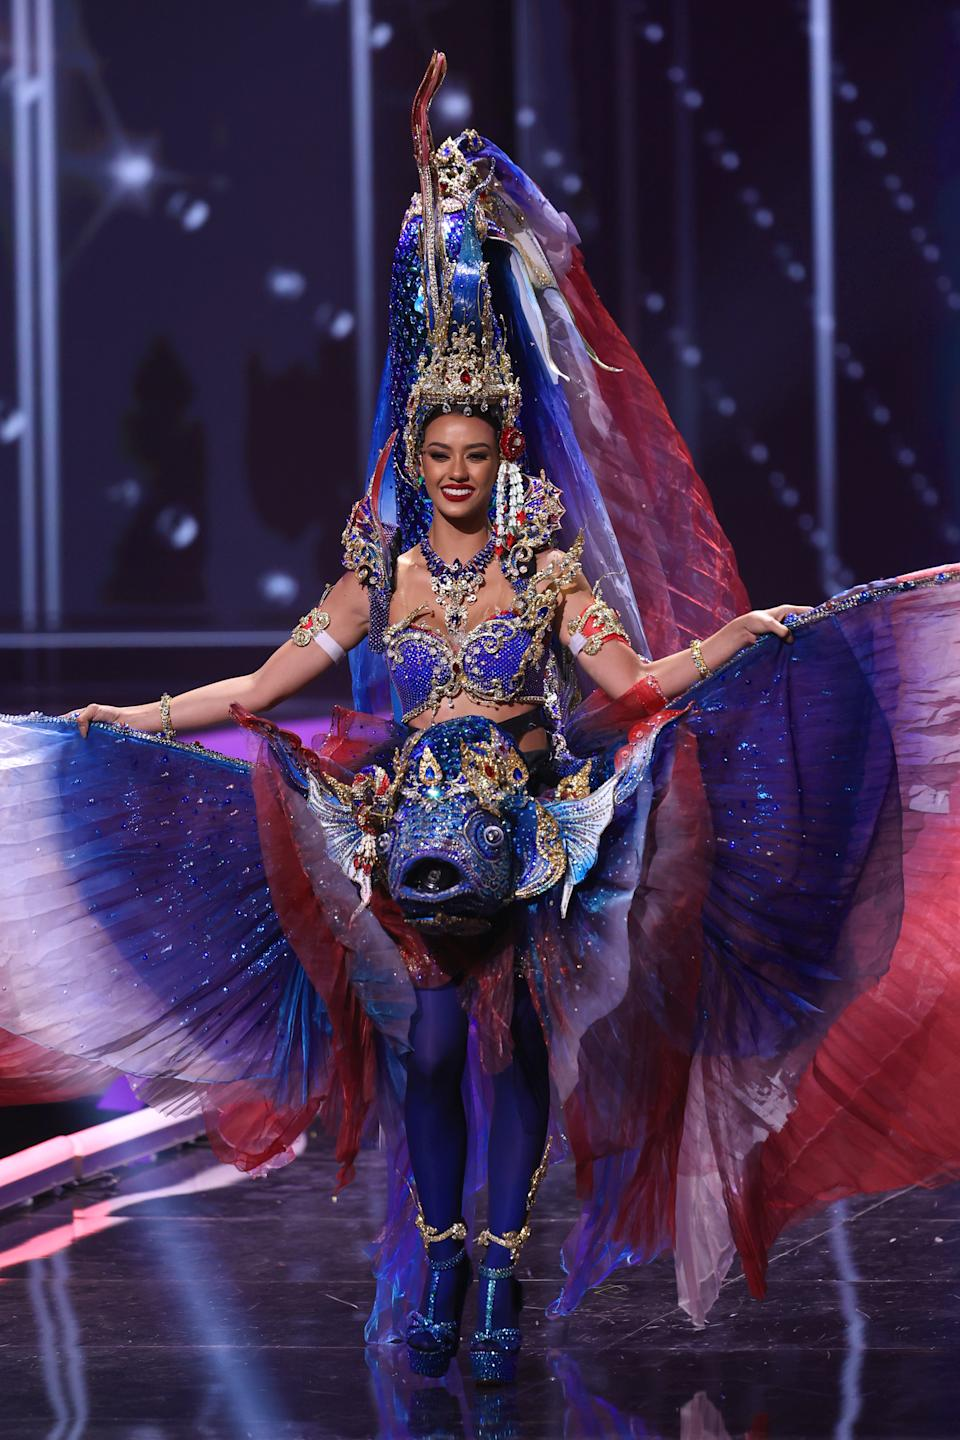 <p>Miss Universe Thailand Amanda Obdam appears onstage at the Miss Universe 2021 - National Costume Show at Seminole Hard Rock Hotel & Casino on May 13, 2021 in Hollywood, Florida. (Photo by Rodrigo Varela/Getty Images)</p>